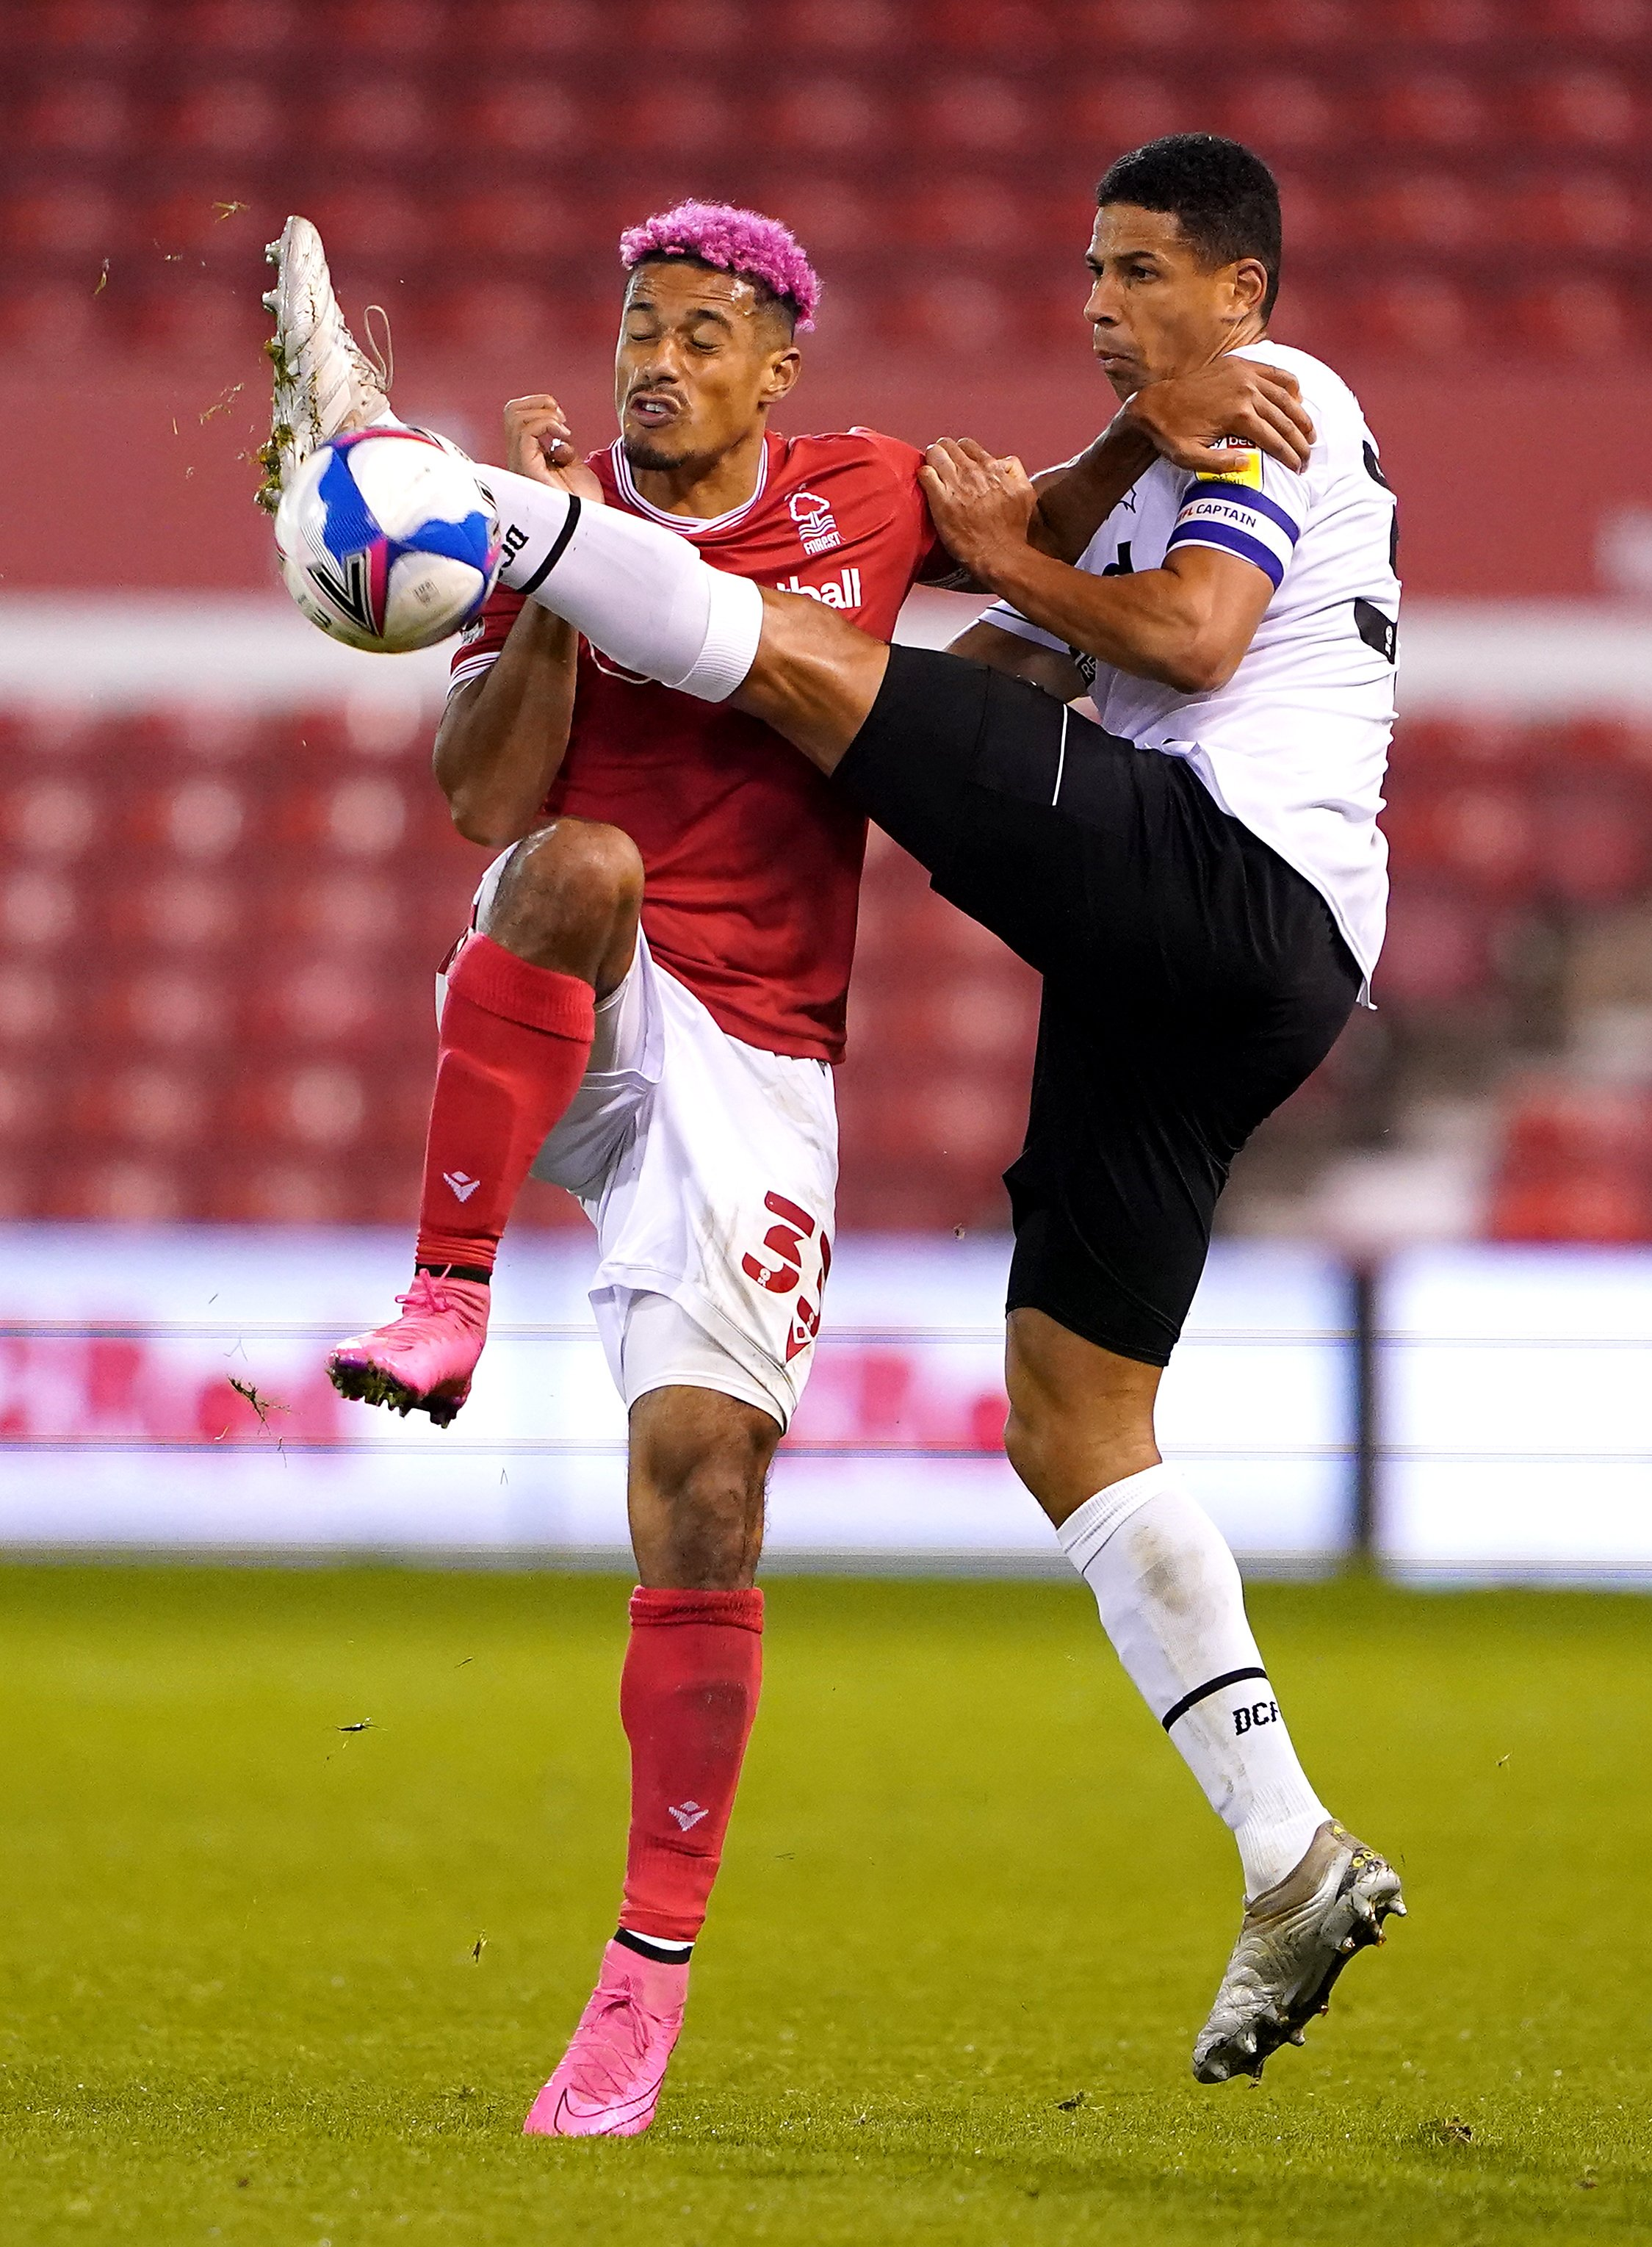 Lyle Taylor leveller rescues point for Nottingham Forest in duel with Derby